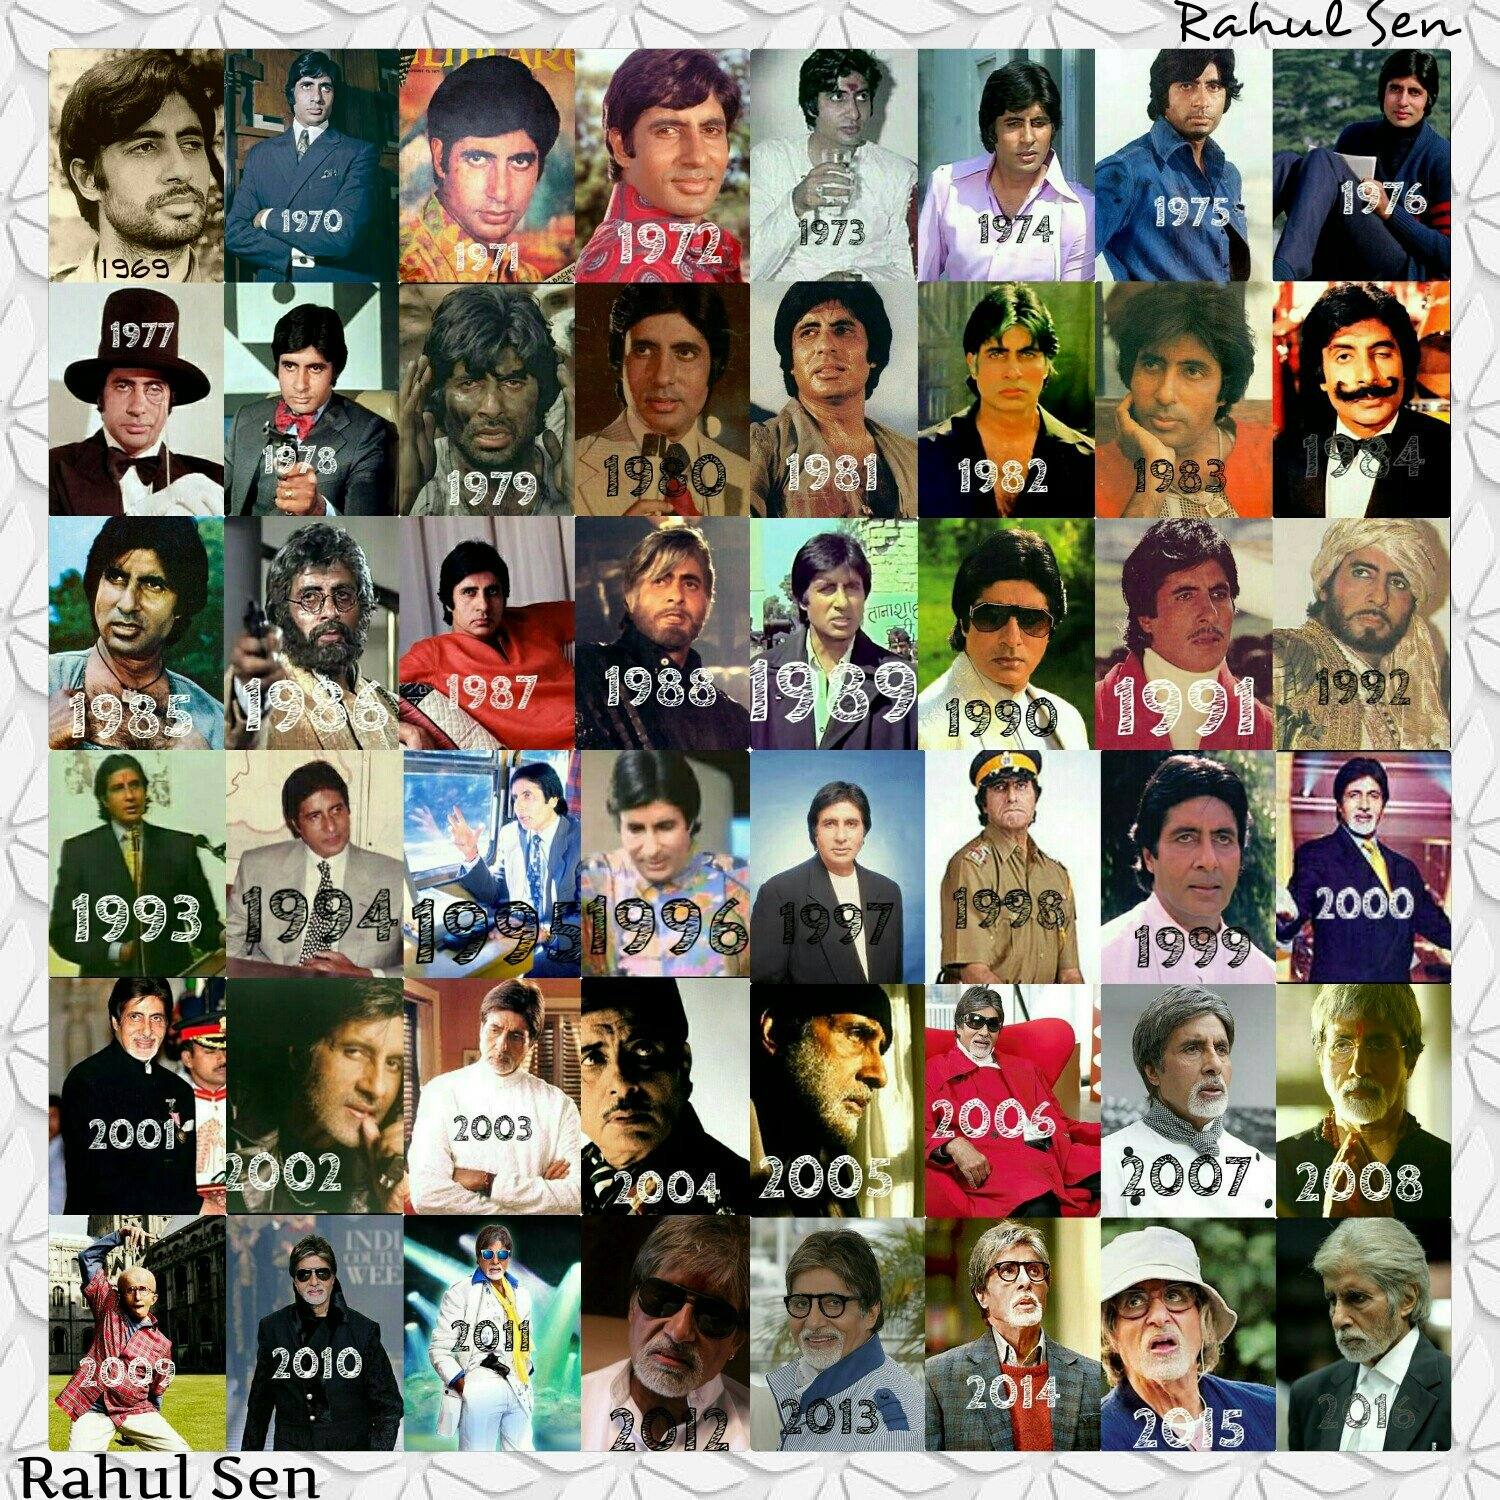 Happy Birthday Shri Amitabh Bachchan jee